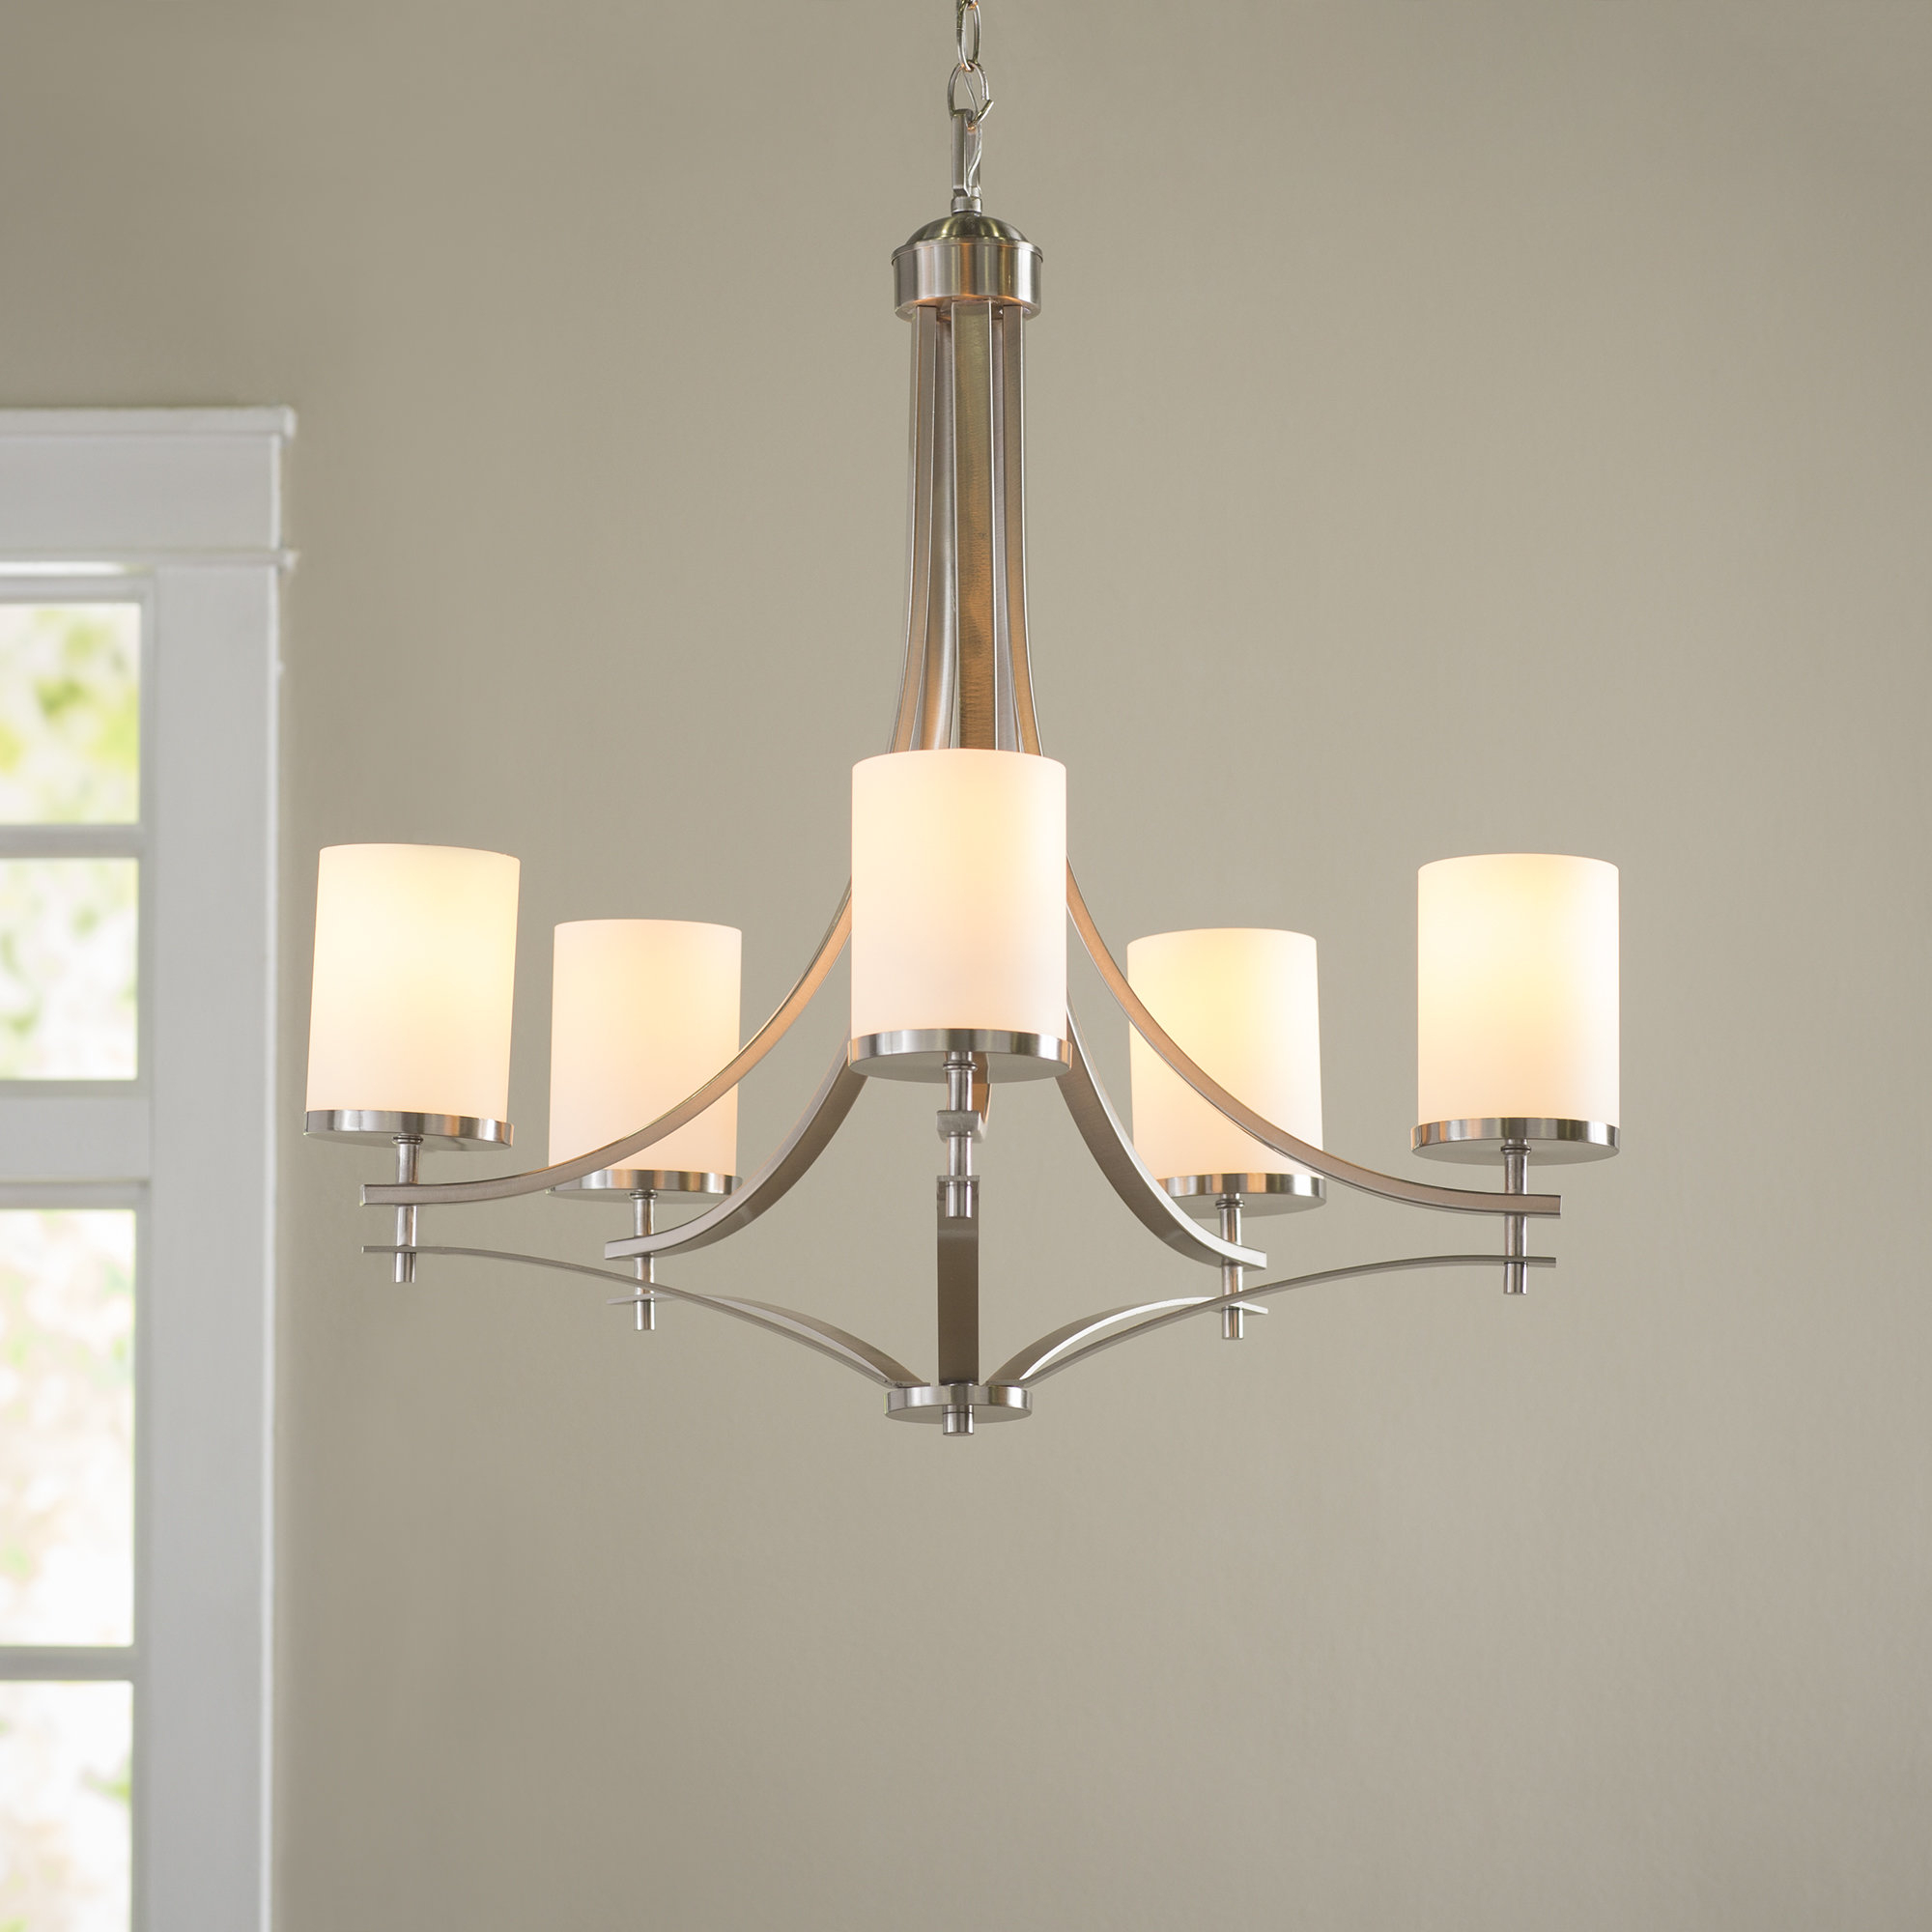 Agnes 5 Light Shaded Chandelier Pertaining To Famous Newent 5 Light Shaded Chandeliers (View 7 of 25)